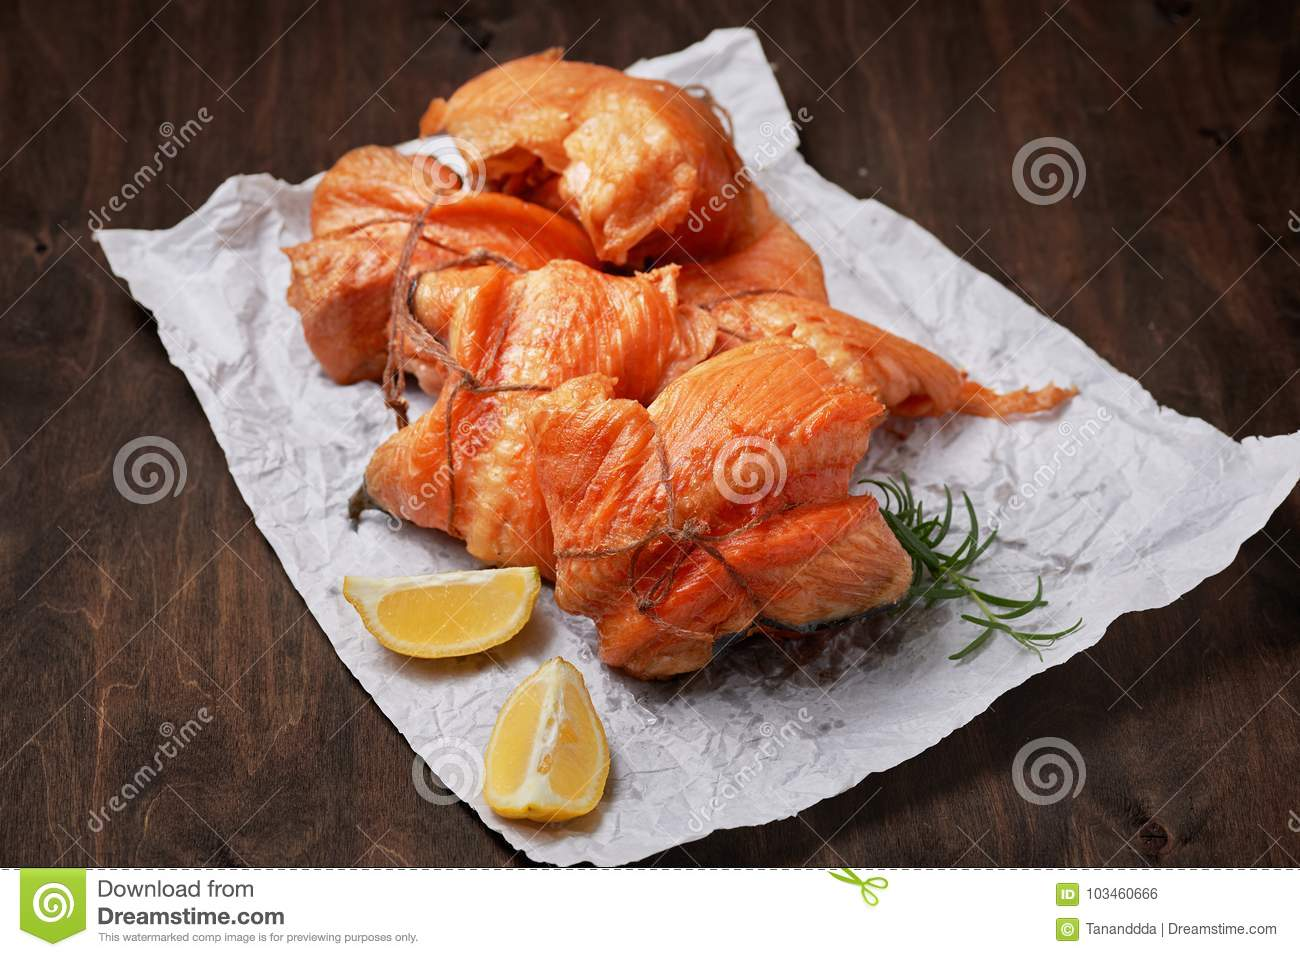 Hot smoked salmon fillet rolls on crumpled paper